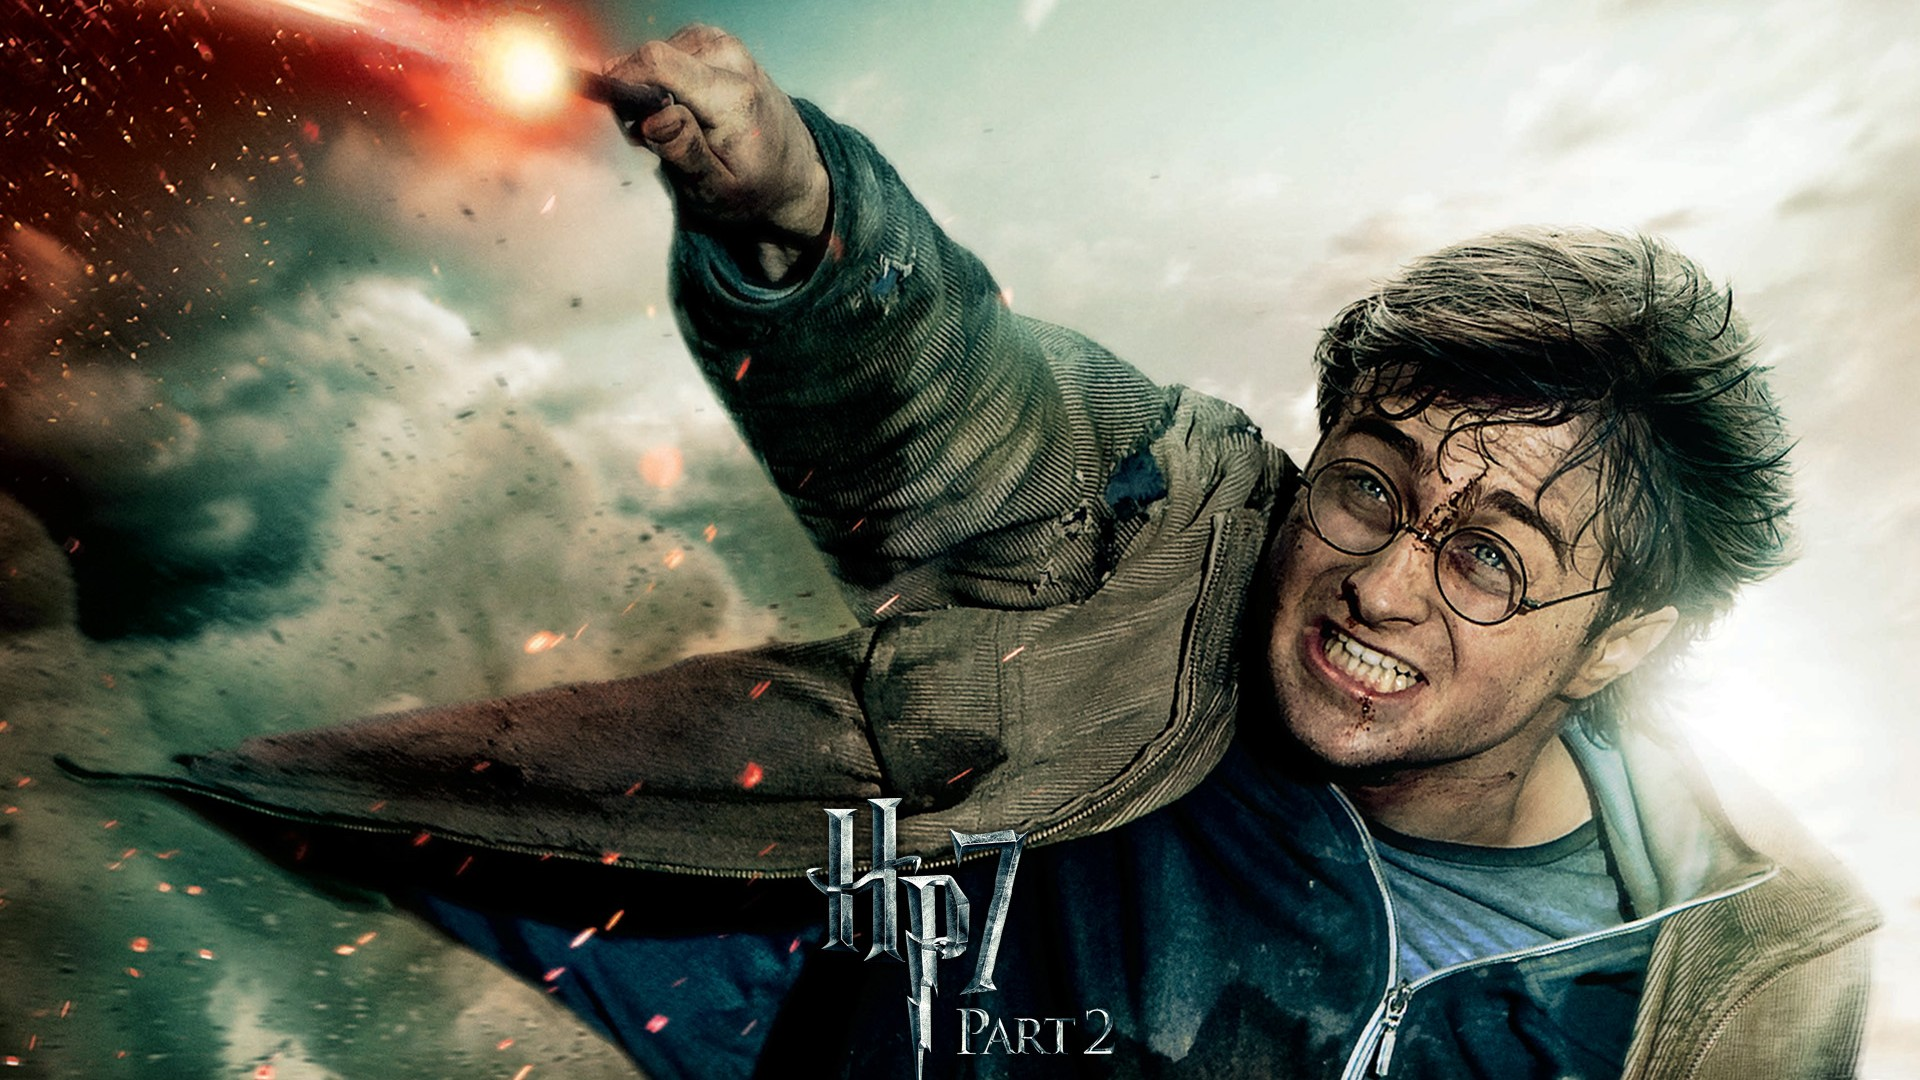 Harry Potter 7 HD movie Wallpaper High Quality WallpapersWallpaper 1920x1080